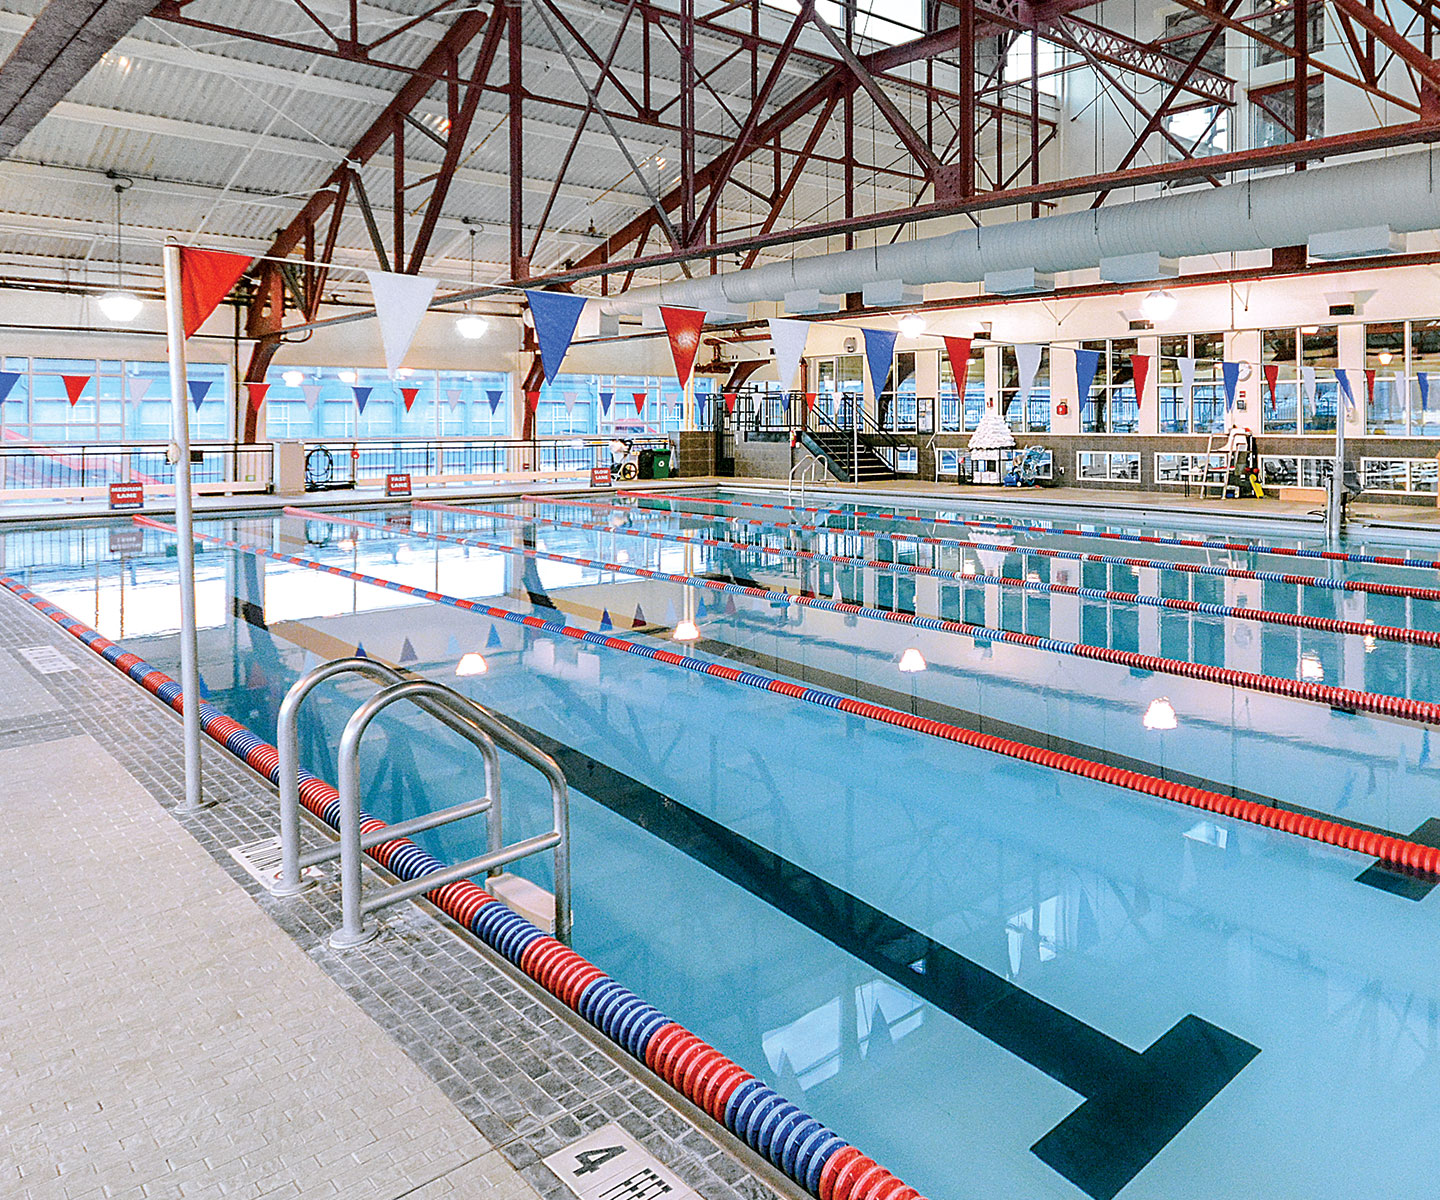 Chelsea piers brooklyn membership cost